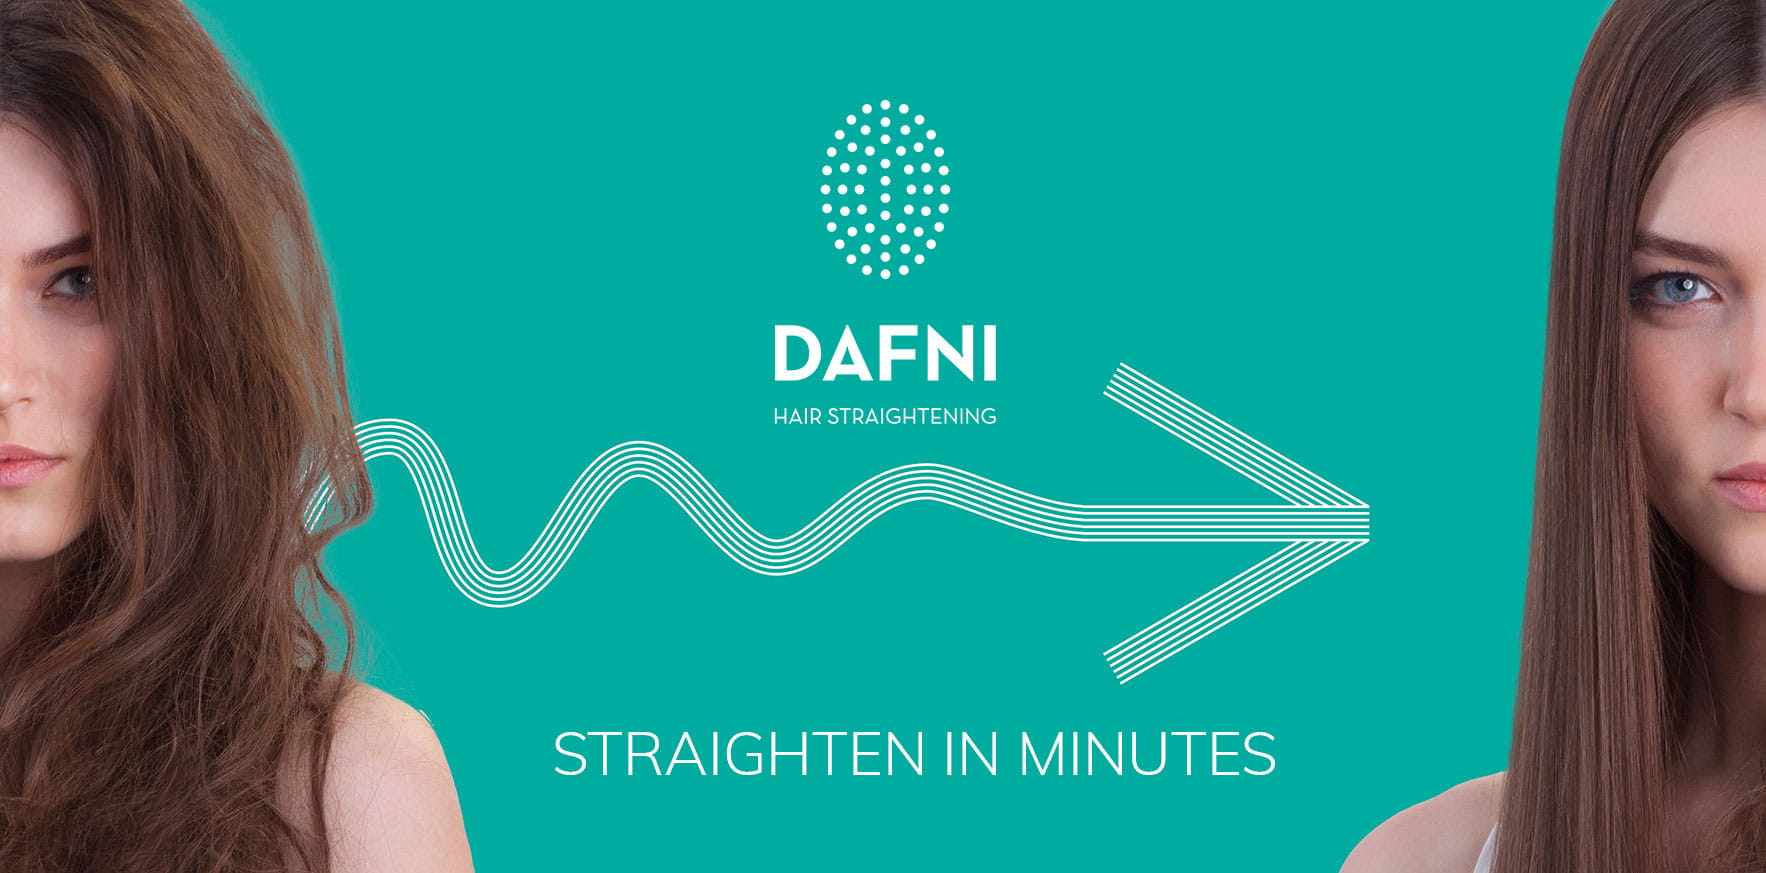 DAFNI - Straighten in Minutes